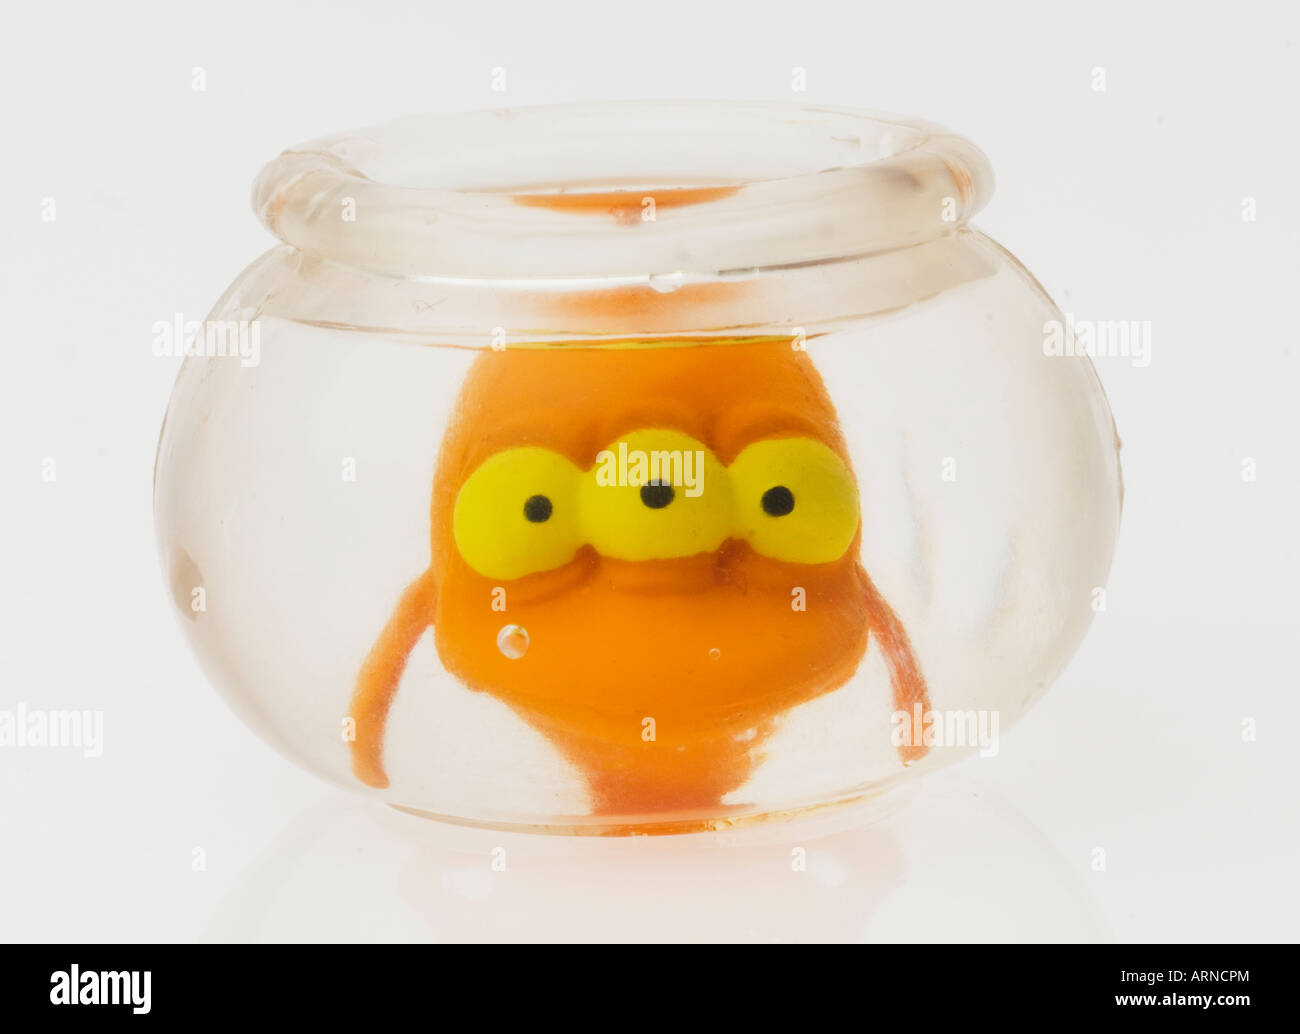 Blinky Stock Photos Images Alamy Flipper Owl Hearty Orange The Nuclear 3 Three Eyed Fish Image